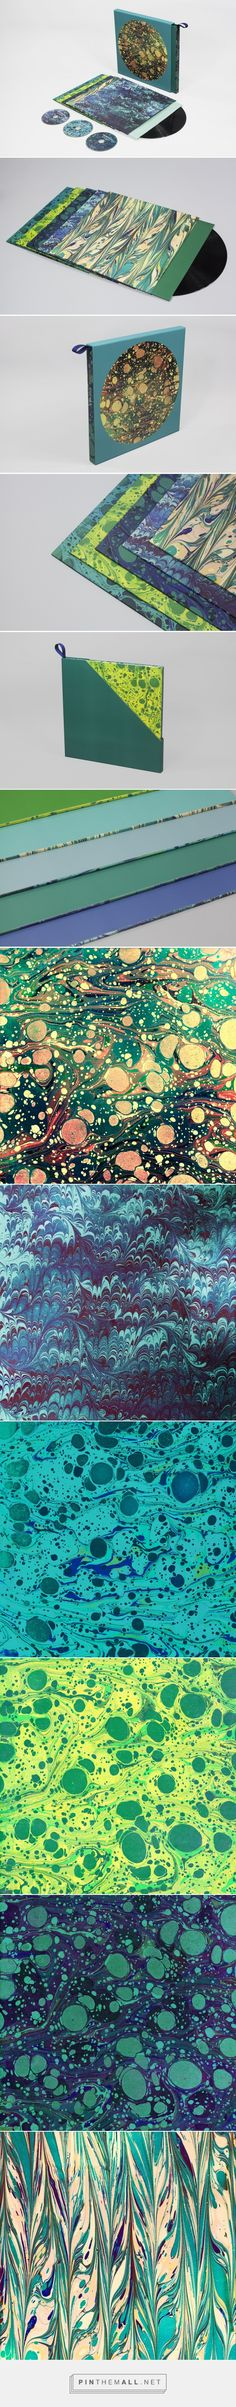 The Horrors - Higher Boxset by Leif Podhajský cuartaed by Packaging Diva PD. Love the colors and patterns on limited edition boxed set of the singles and videos from Skying, featuring covers, reworkings and remixes from Andrew Weatherall, Connan Mockasin, Seahawks and more.